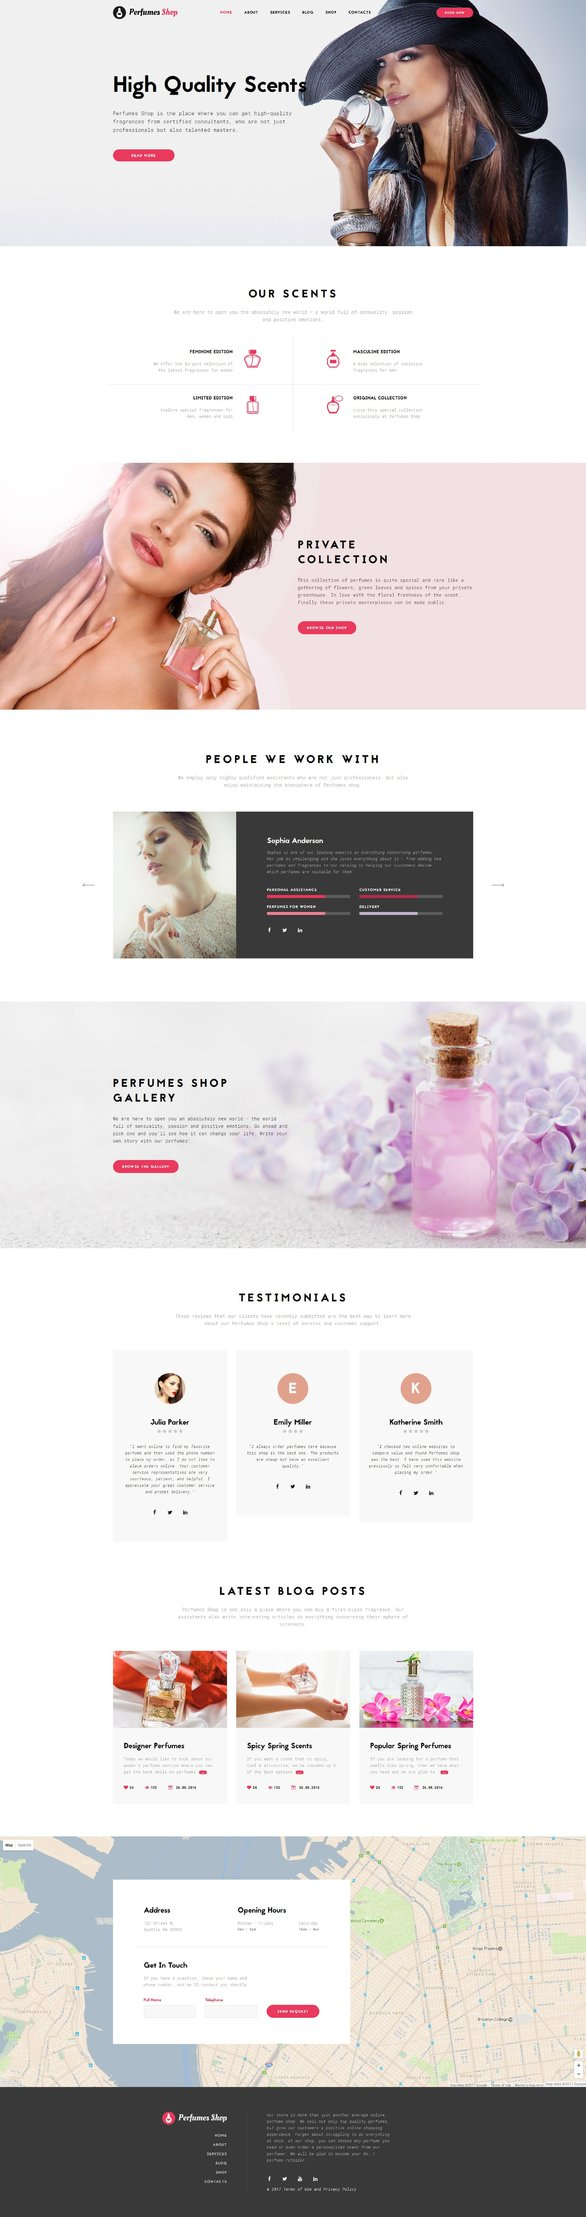 Cosmetics Store Multipage Bootstrap Website Template